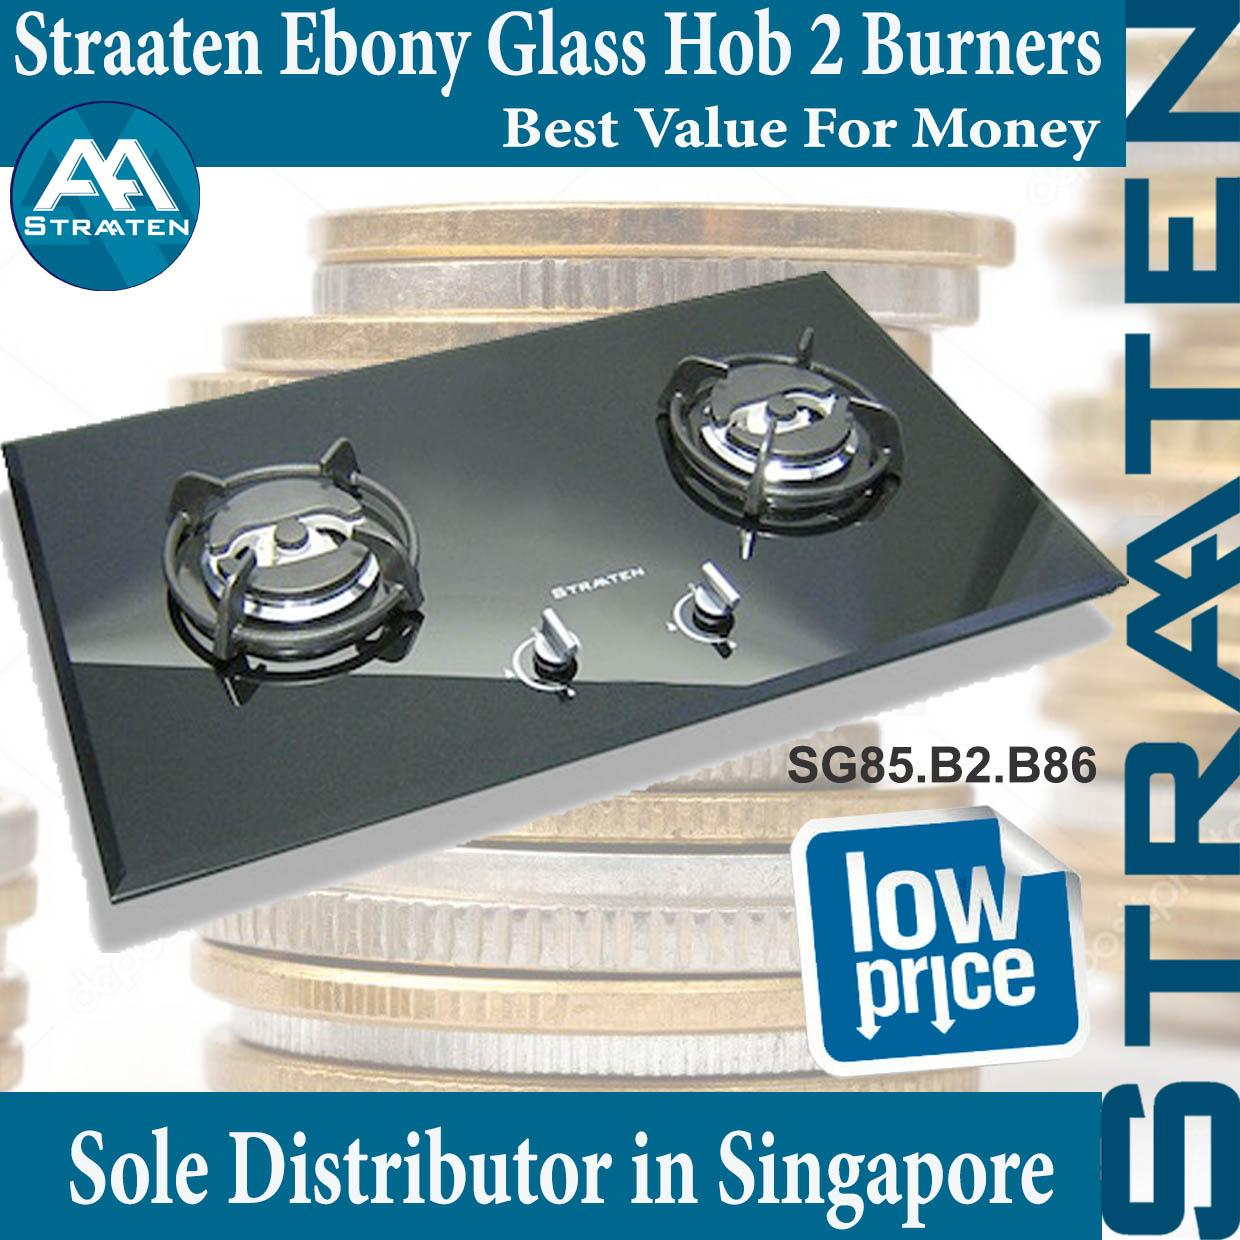 Purchase Straaten Sg85 B2 B86 Ebony Glass Hob 2 Ultra Rapid Burners With Safety Device 1 Year Warranty